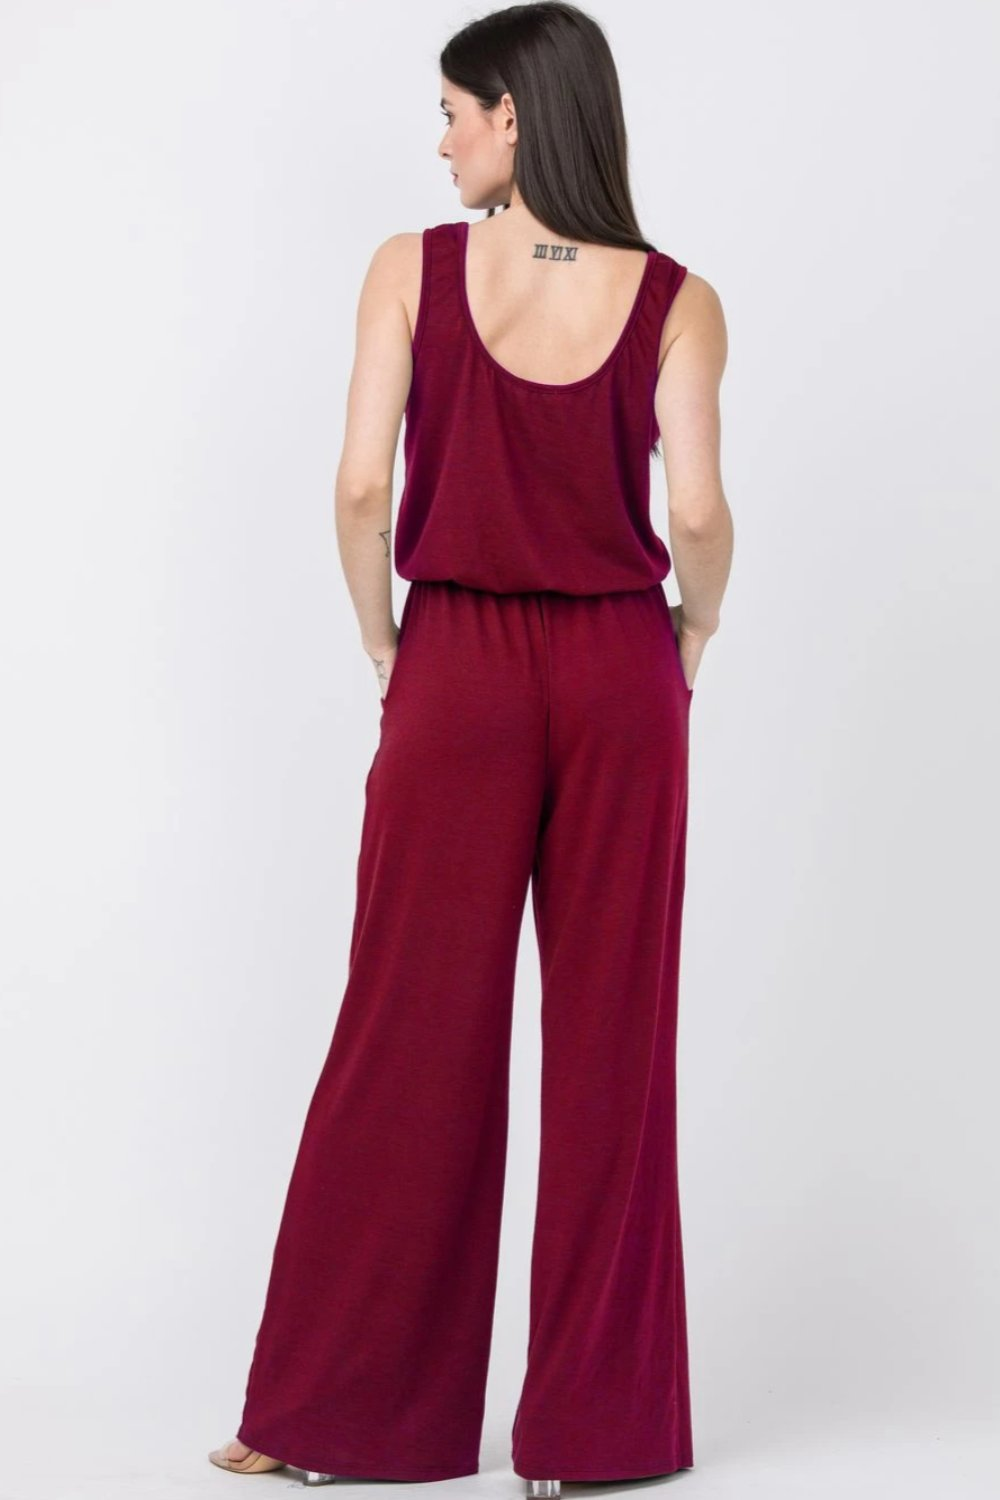 Burgundy Sleeveless Drawstring Jumpsuit with Front Pocket